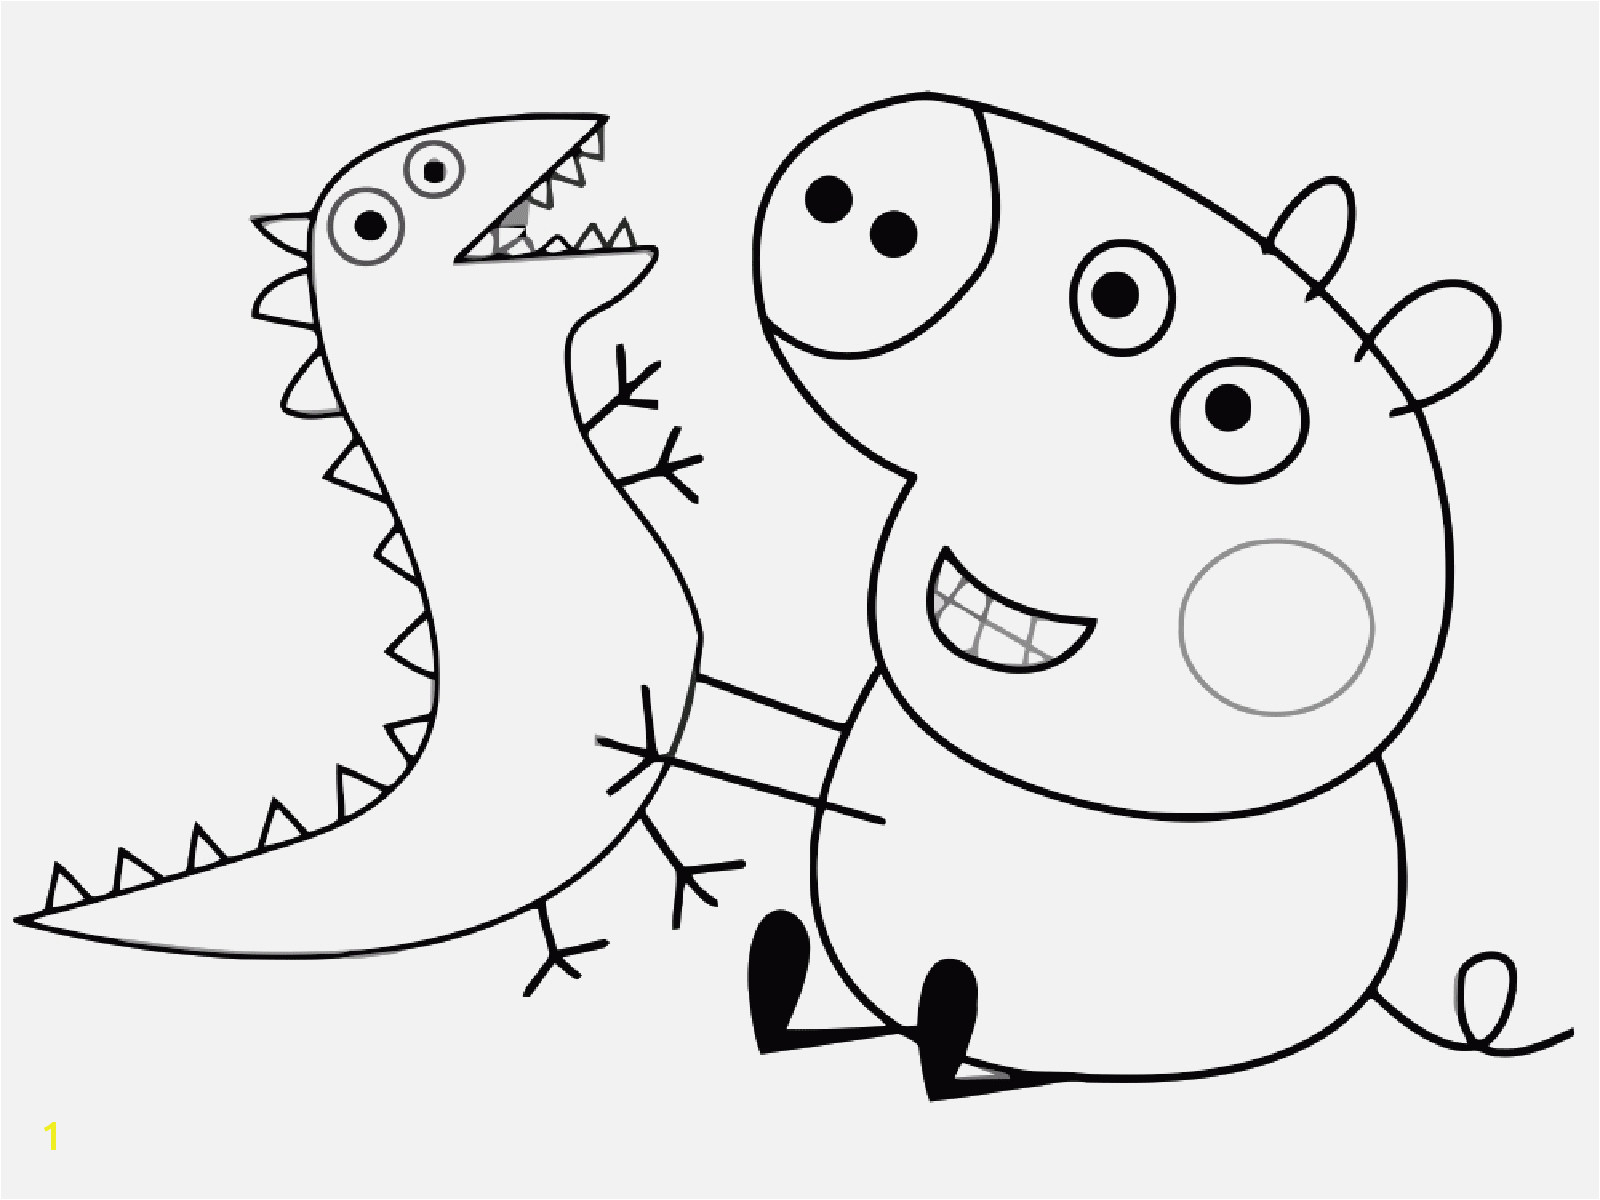 Malvorlage Peppa Wutz Bilder Zum Ausmalen Bekommen Peppa Pig Coloring Pages Download Lovely Peppa Pig Fathers Day